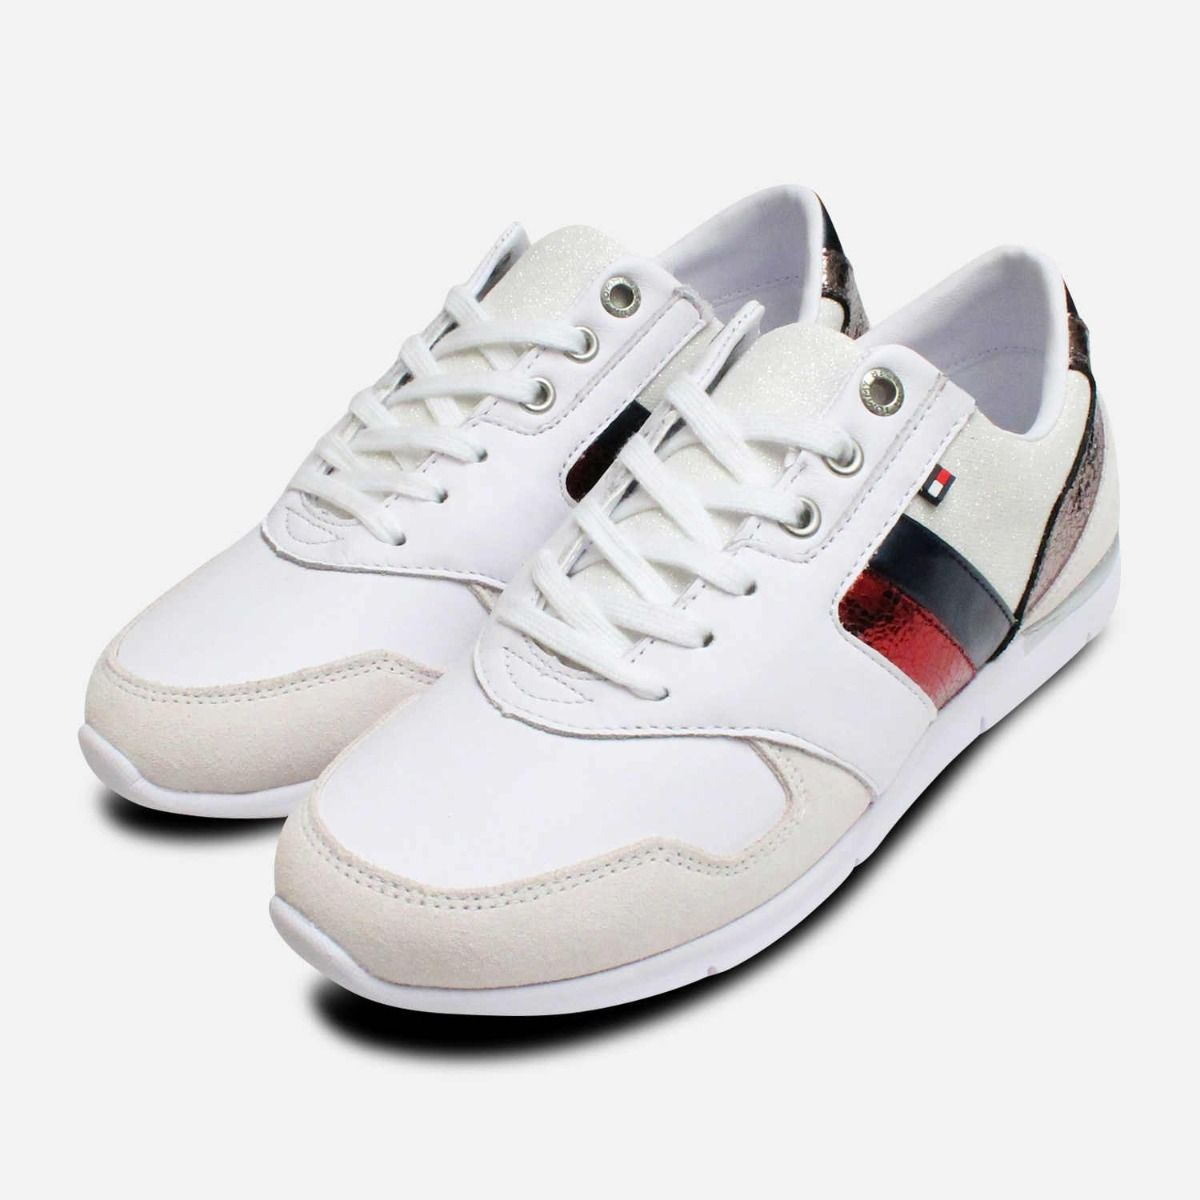 White Leather Tommy Hilfiger